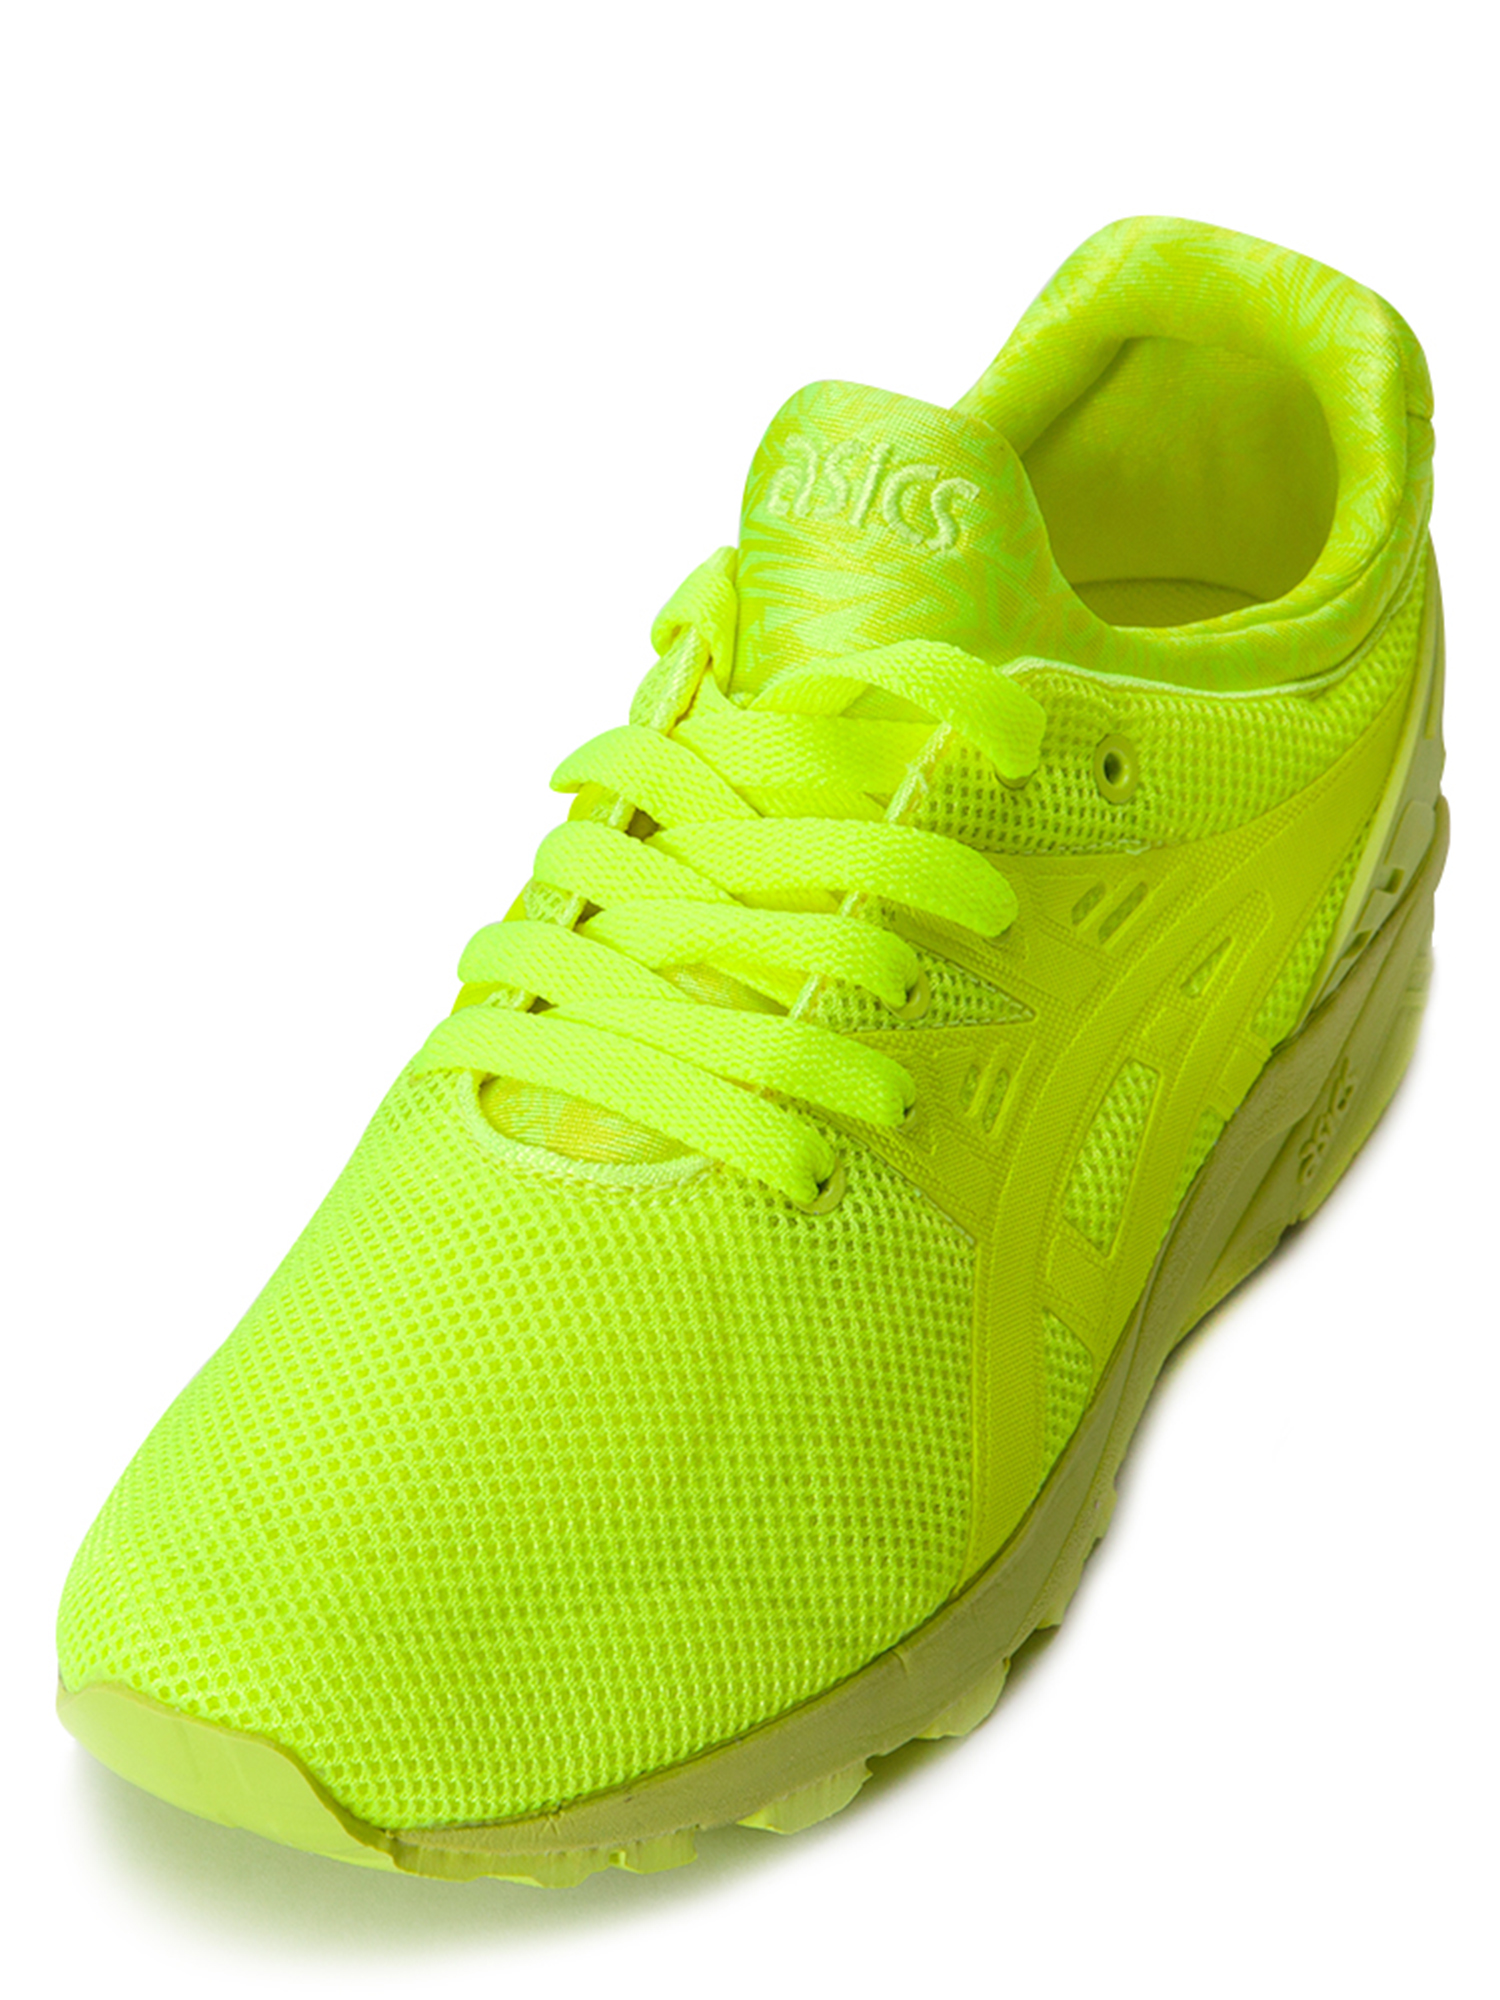 4eec624a570aa Asics Men's Gel Kayano Trainer Shoes H51DQ.0505 Lime